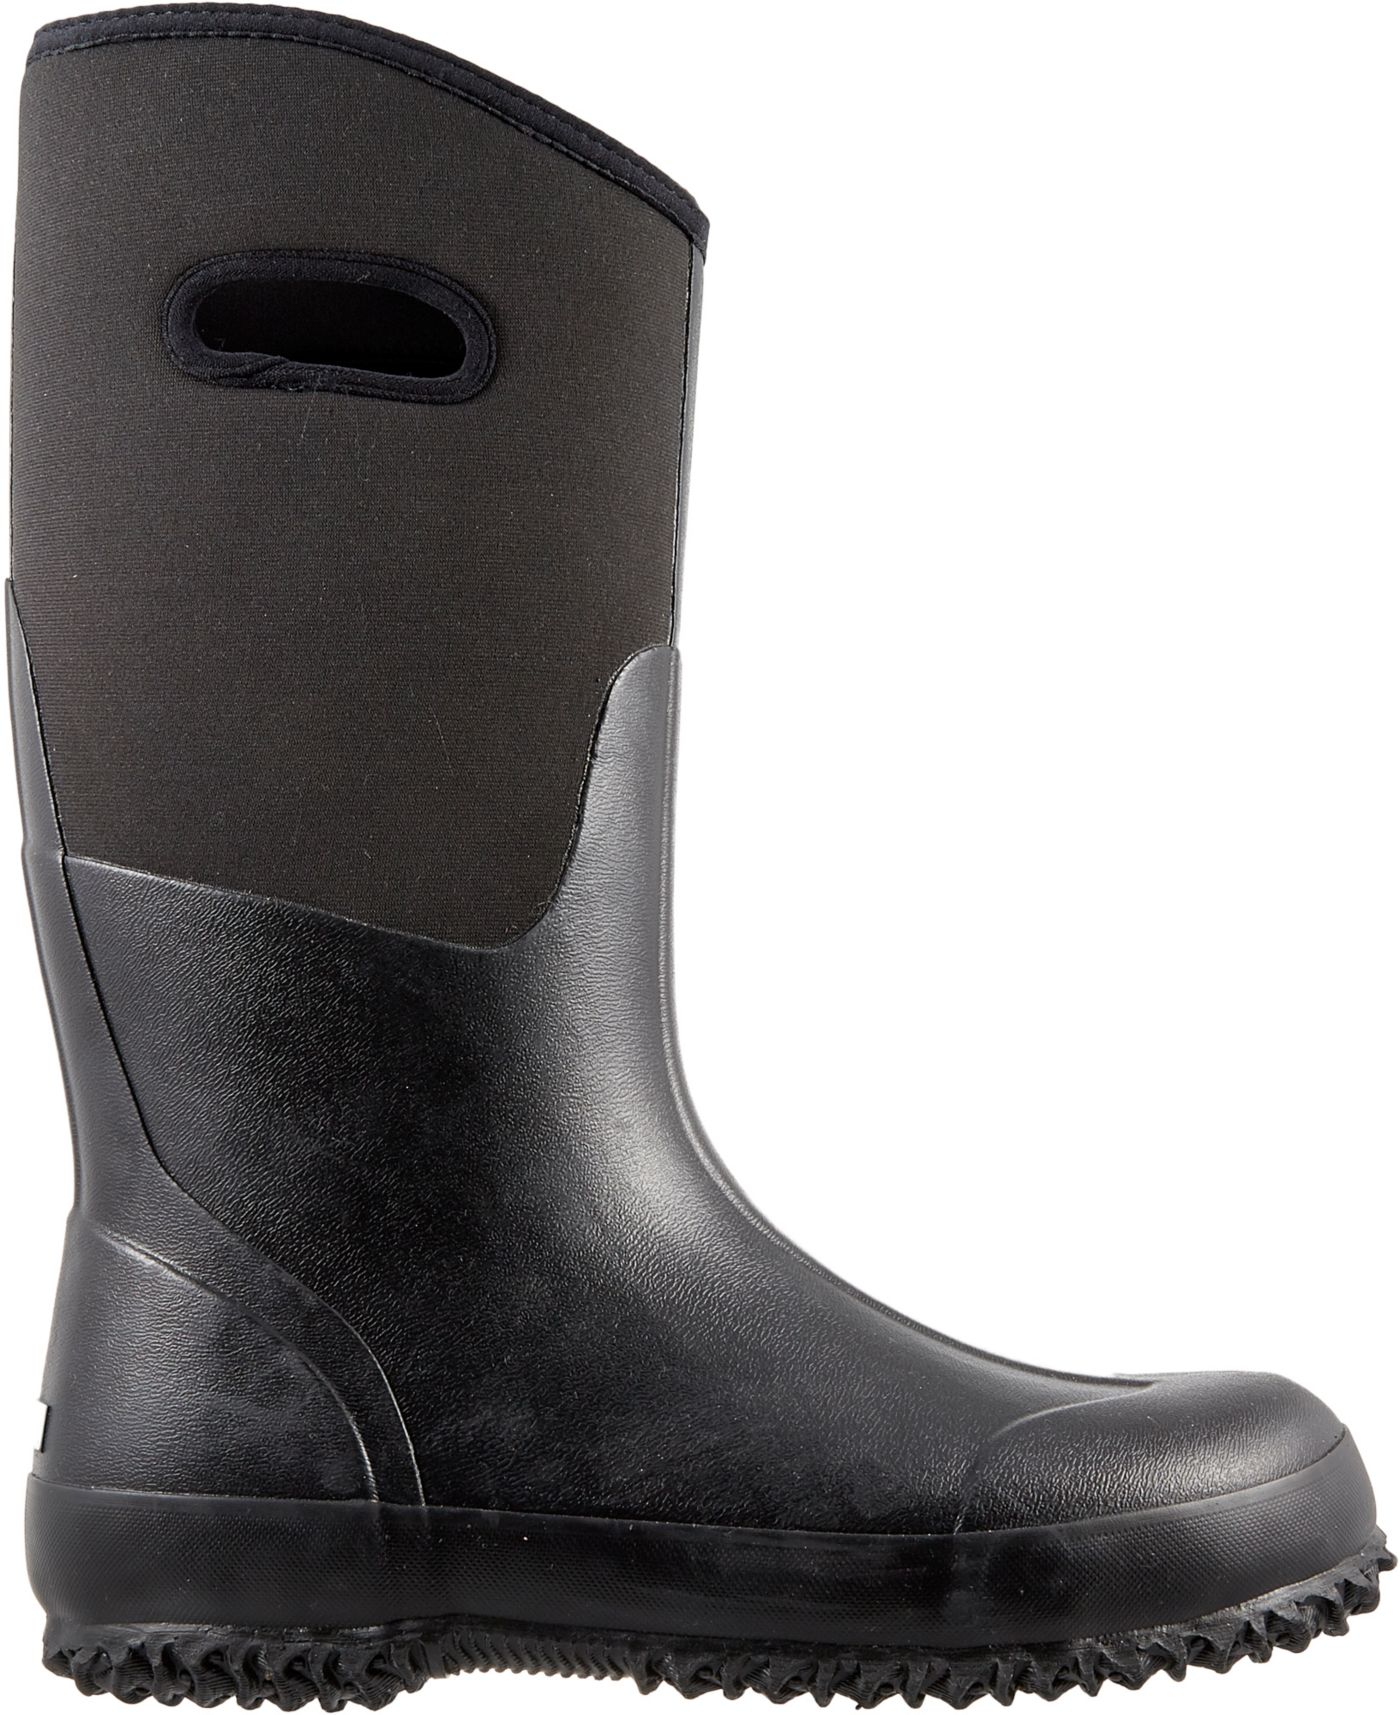 Field & Stream Men's Classic Pull-On Insulated Rubber Hunting Boots